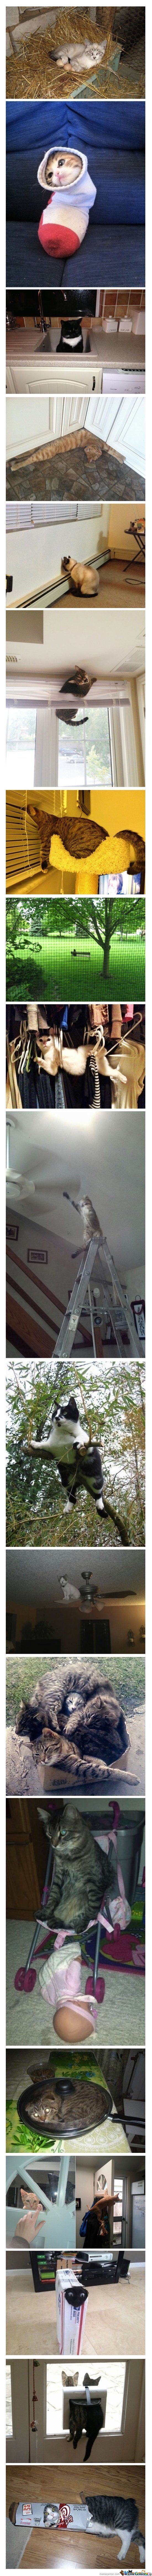 i'm starting to like cats...they're pretty funny...